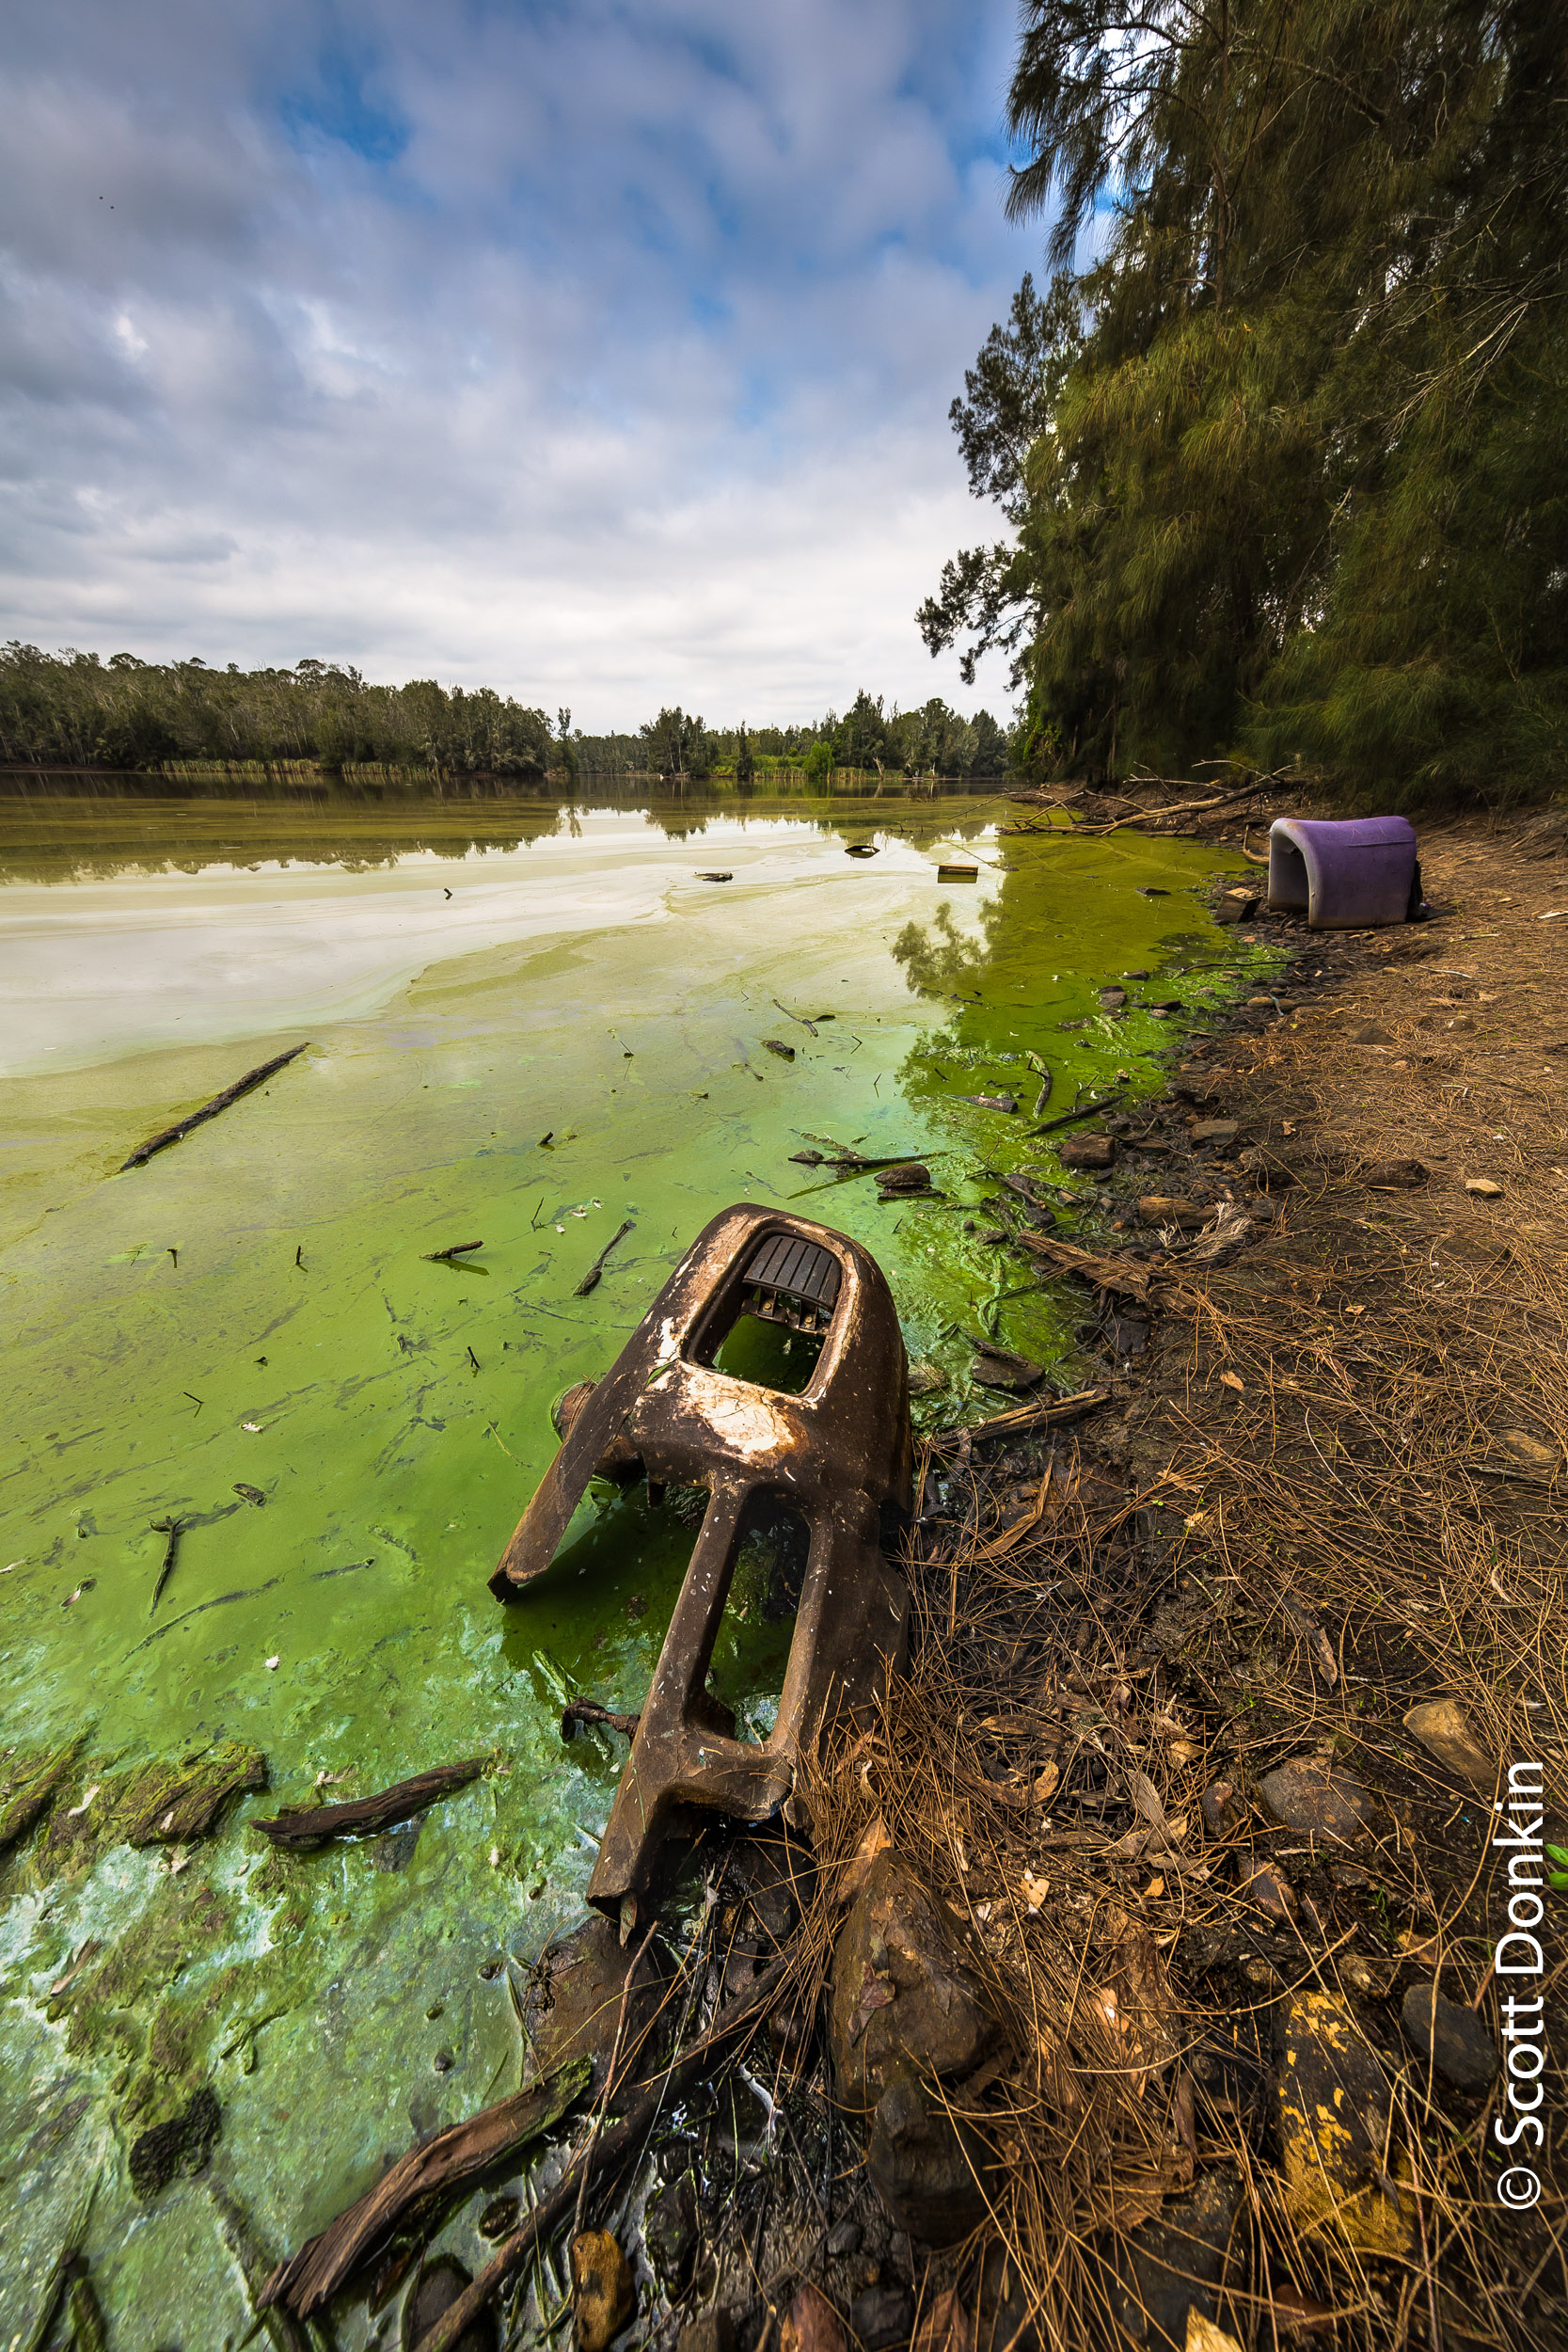 Polluted lagoon. Longneck Lagoon, Cattai, New South Wales.